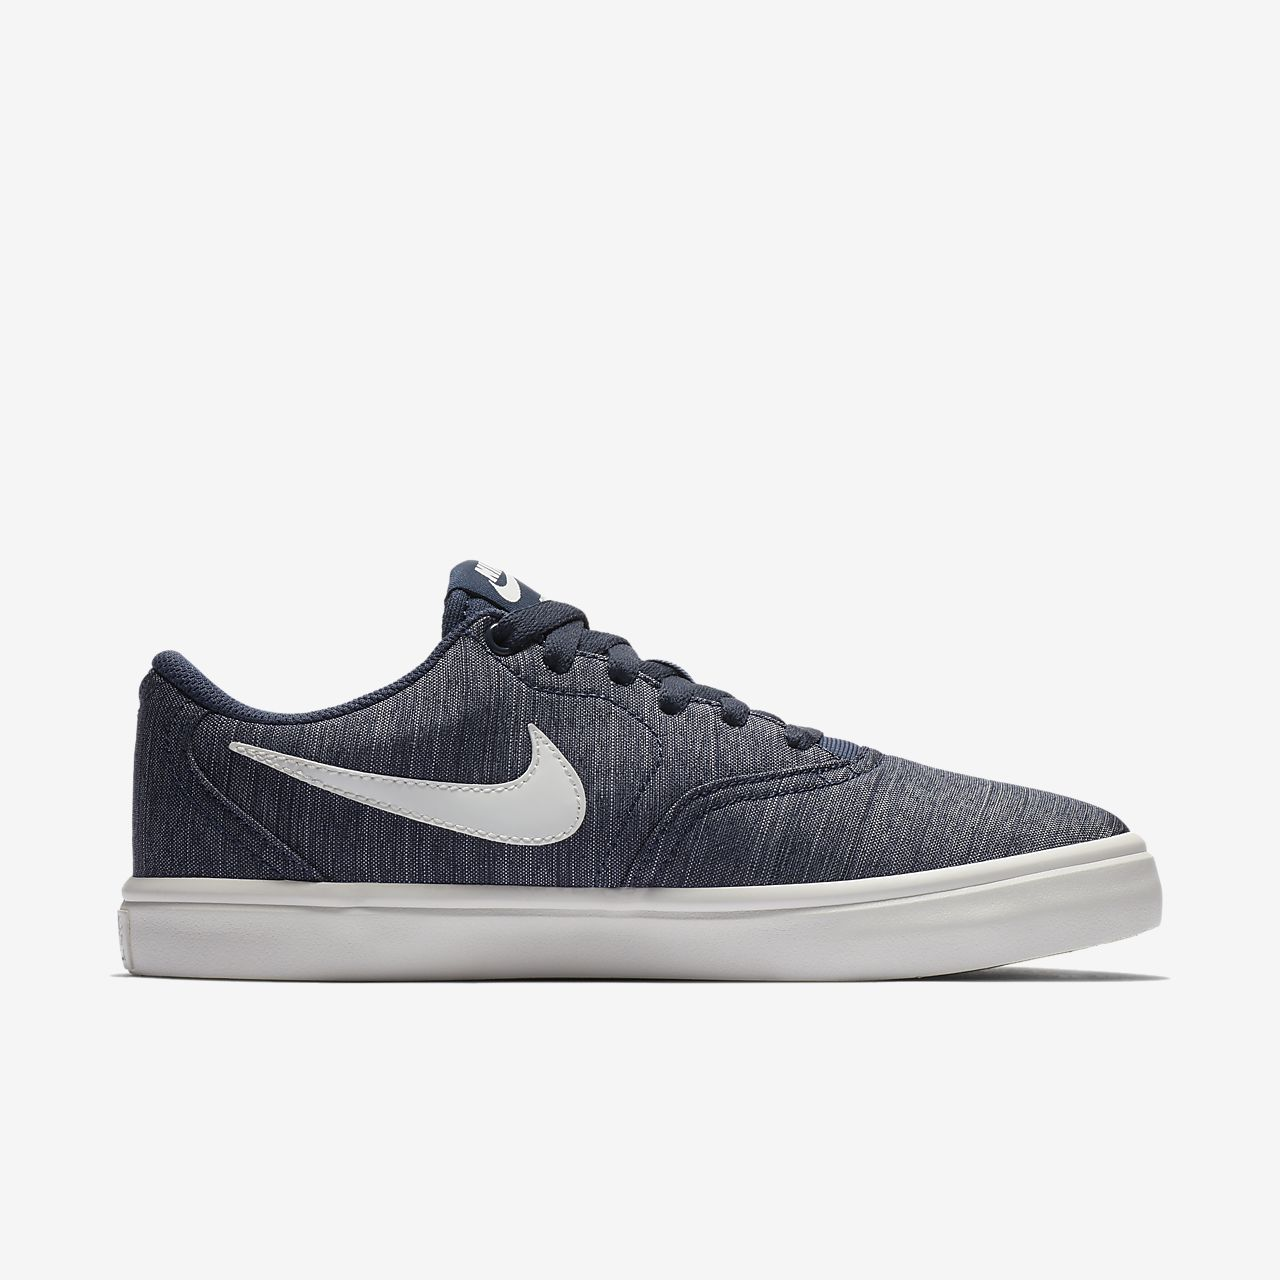 Nike SB Check Solar Women's Skateboarding Shoes Black/White dA3830W